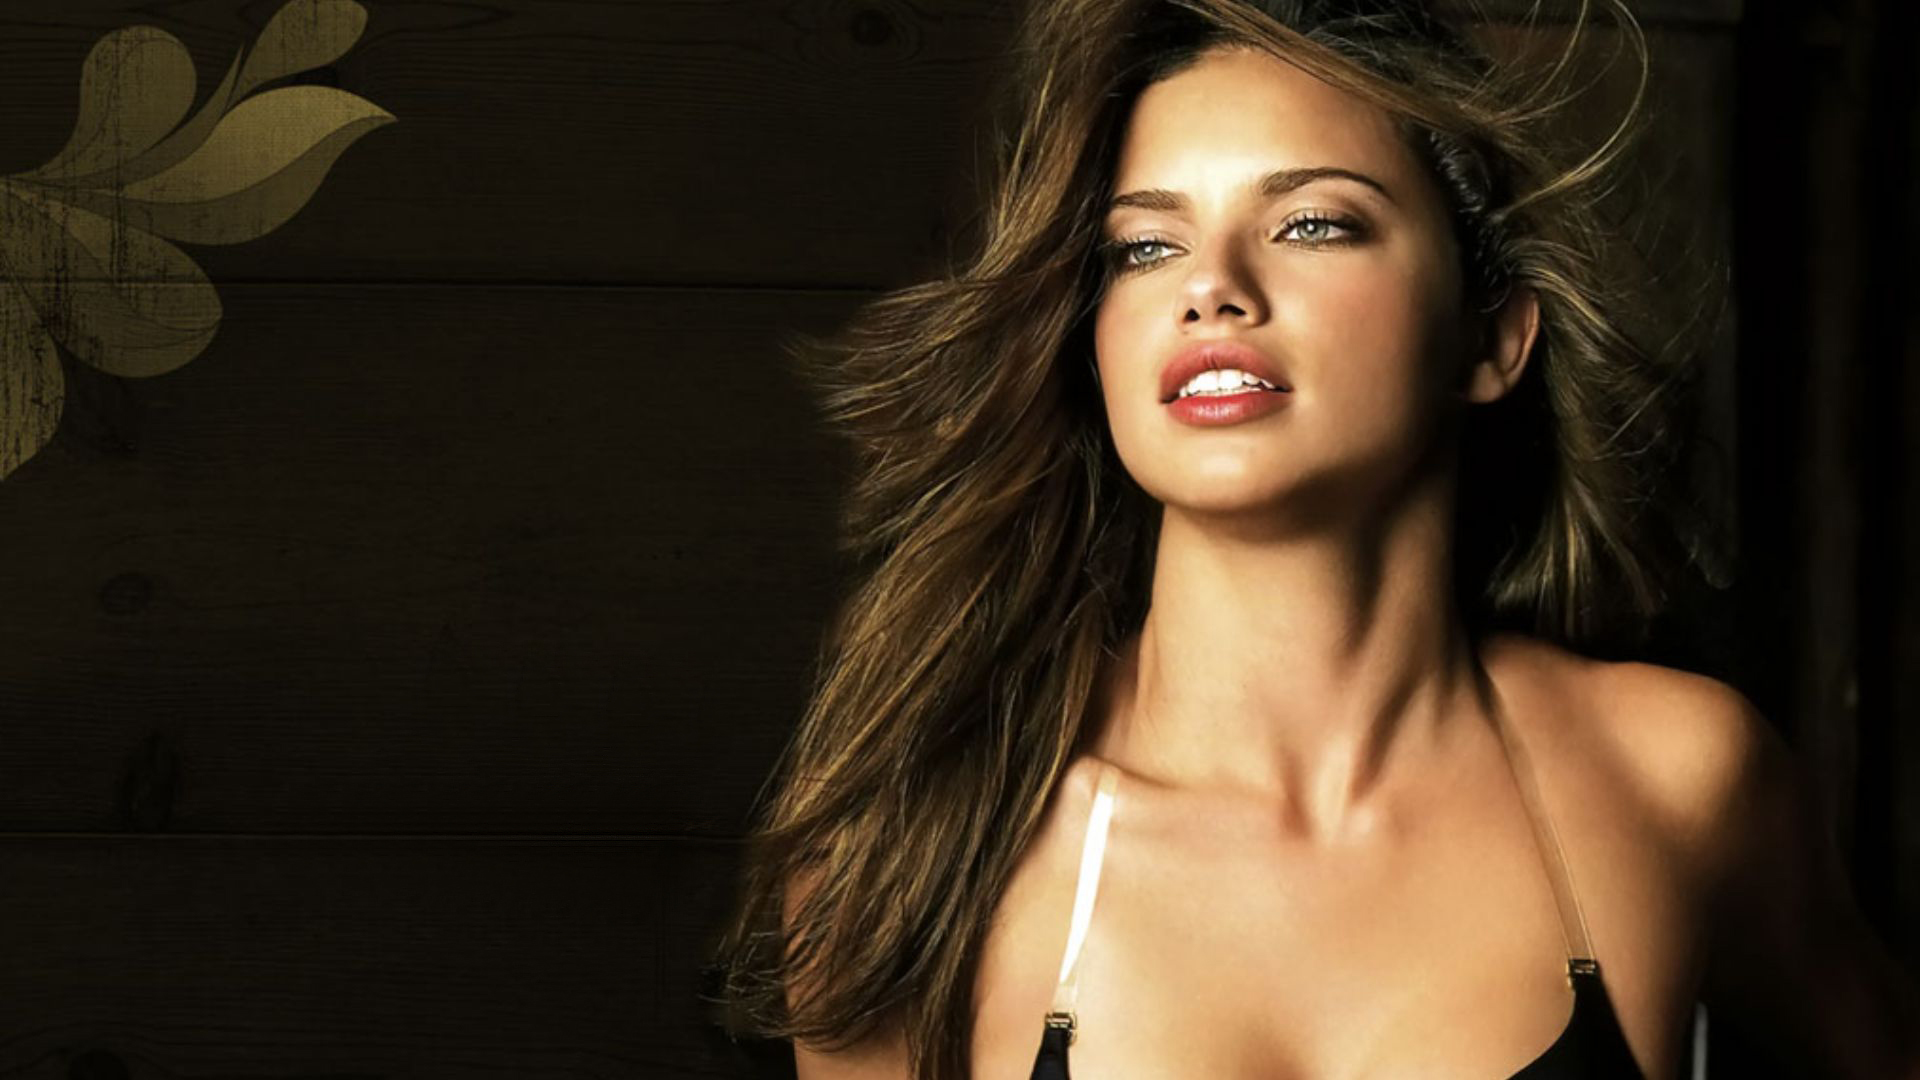 Adriana lima wallpapers hd voltagebd Images